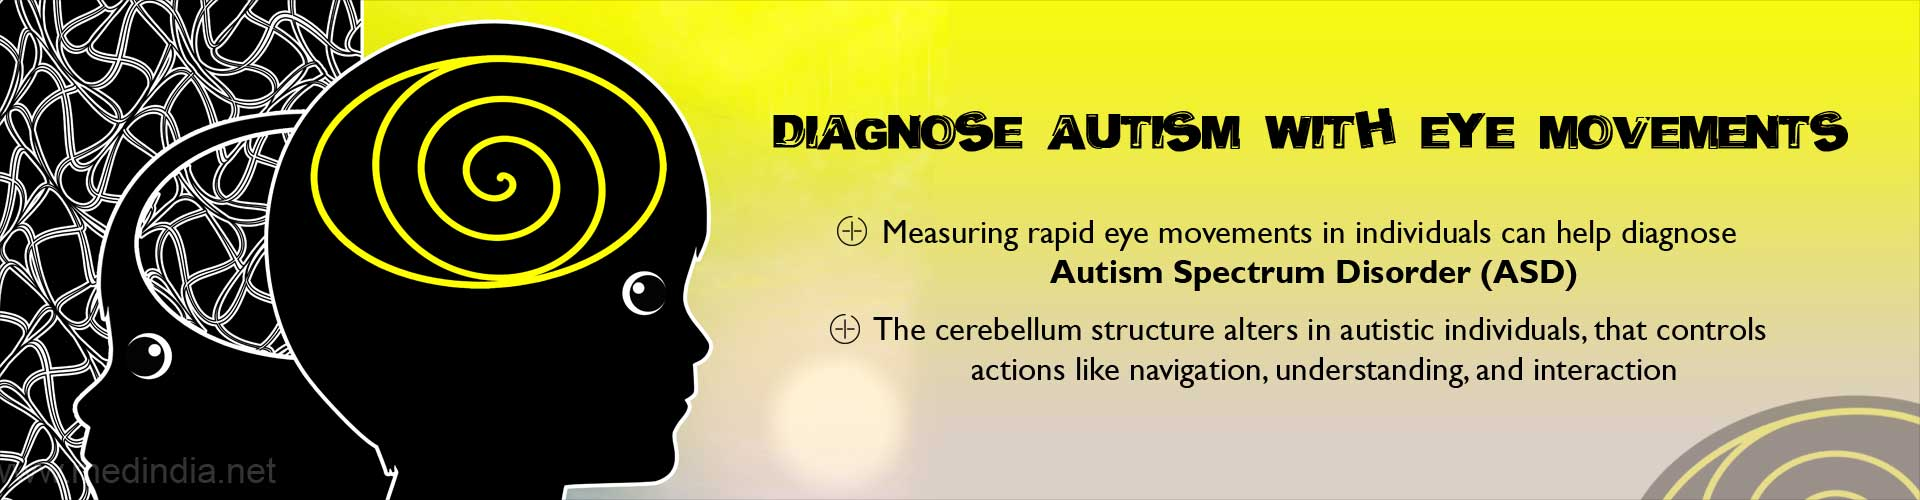 Track Eye Movements to Diagnose Autism Spectrum Disorder